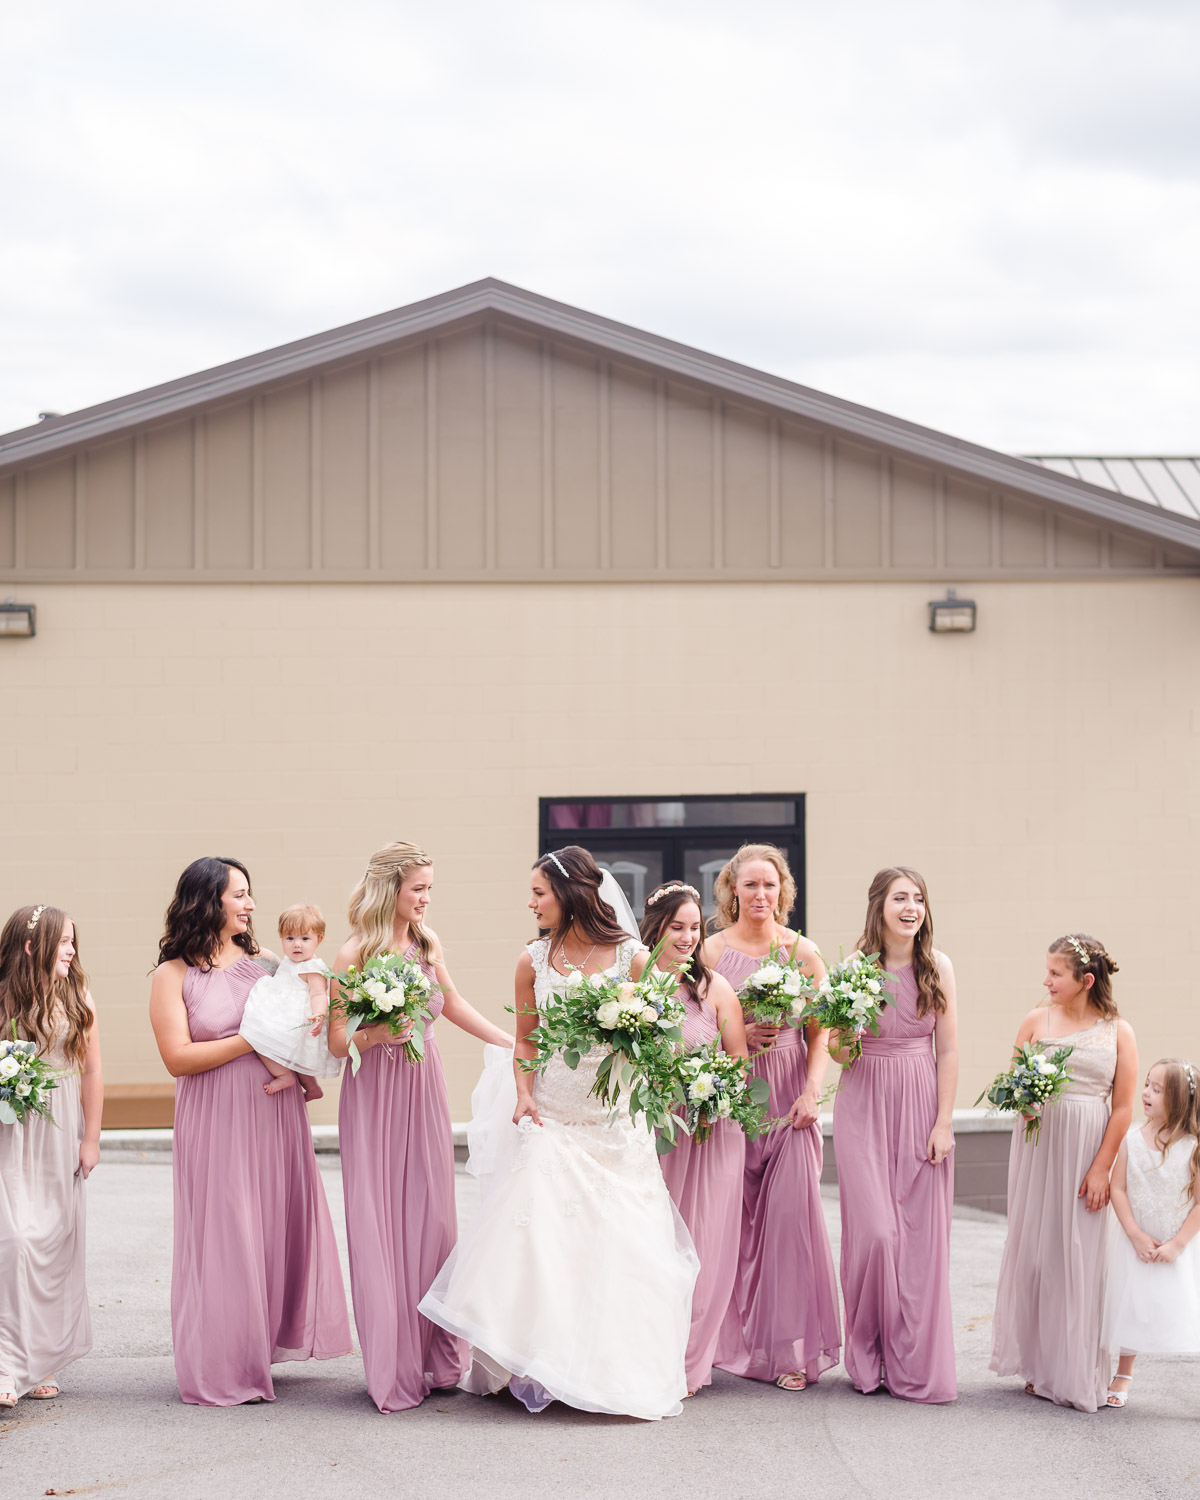 bride and her bridesmaids wearing a lavendar/mauve colored dresses walking outside lauging and talking in Knoxville